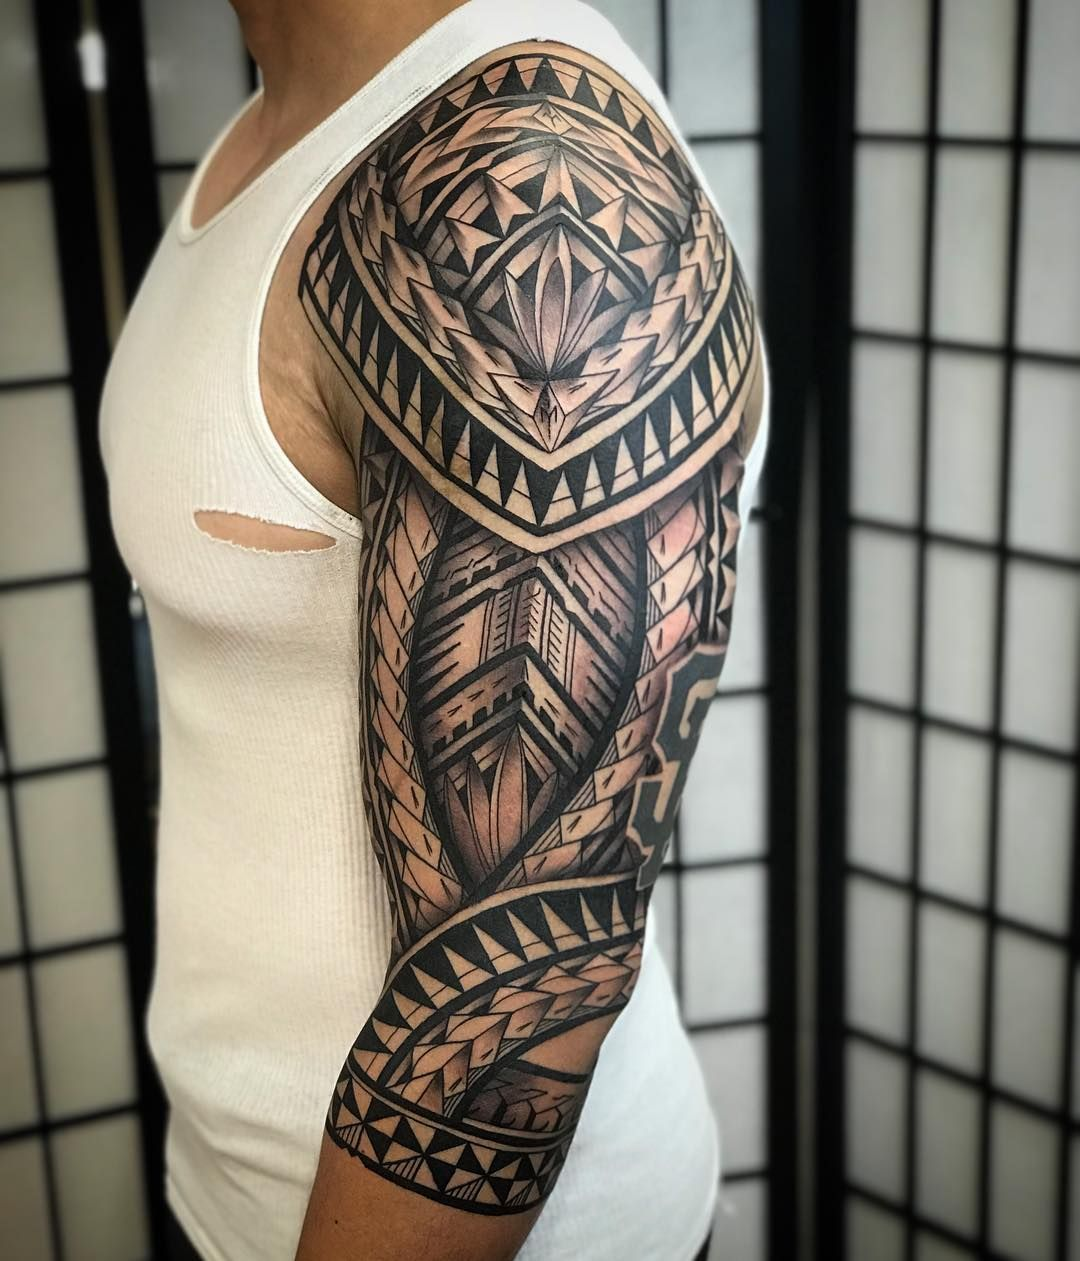 sleeve tattoo idea maori tatuagem ideias de tatuagens. Black Bedroom Furniture Sets. Home Design Ideas